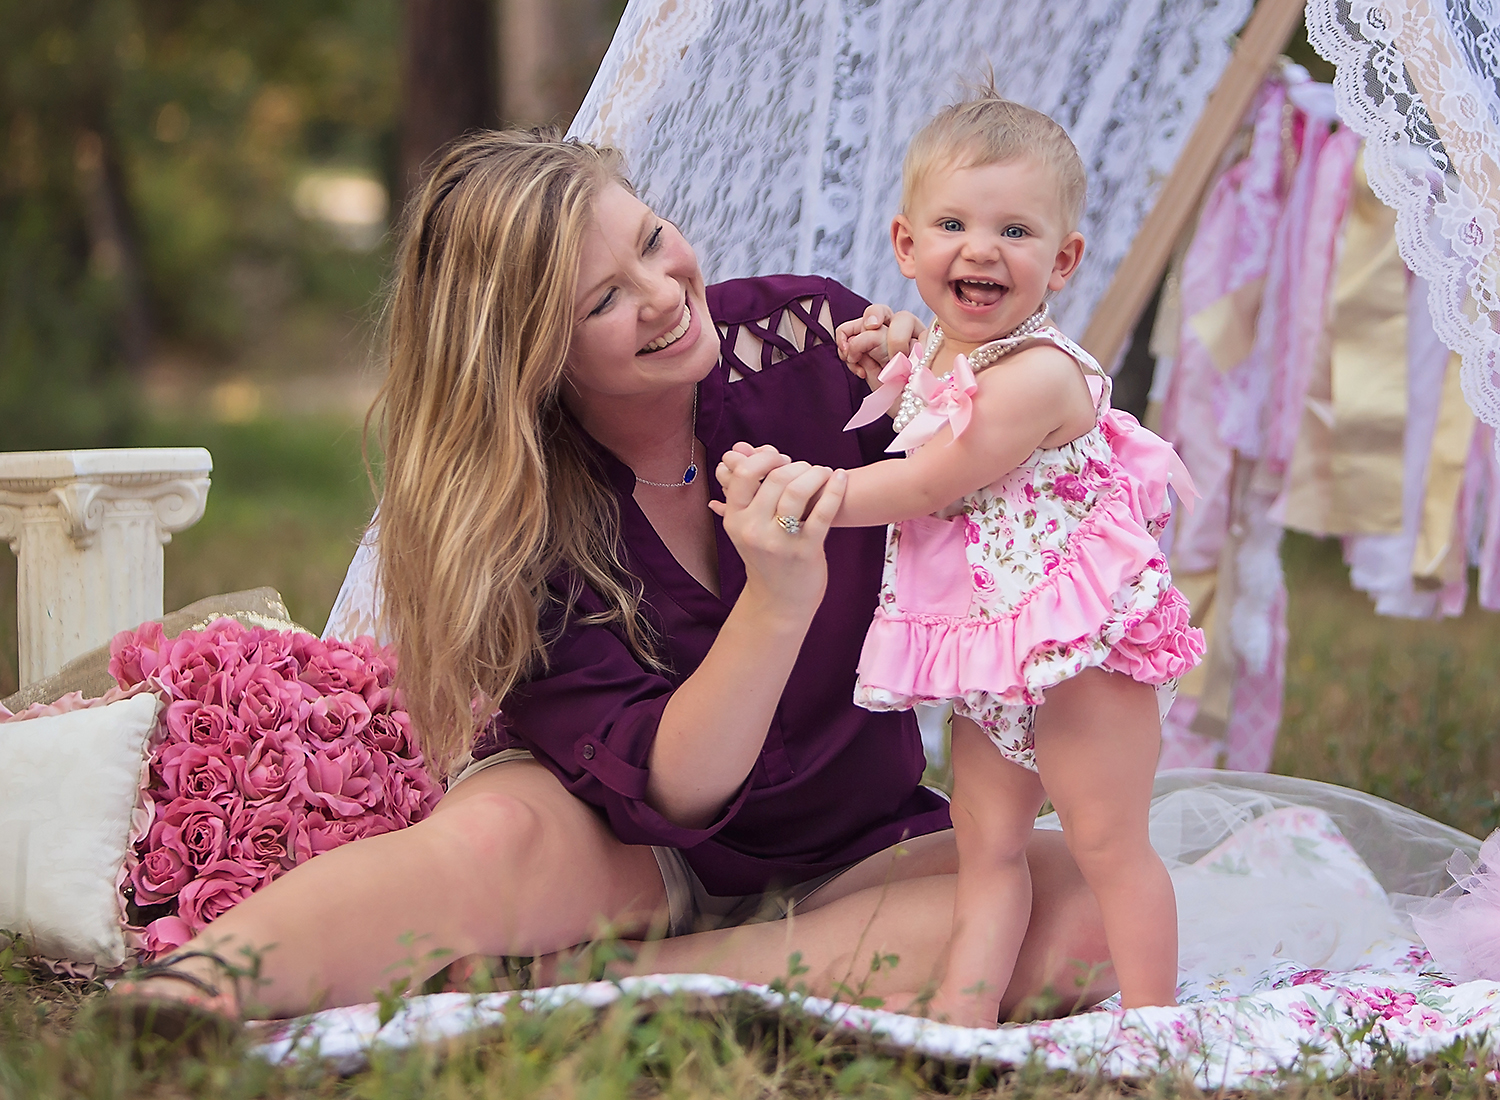 the-woodlands-texas-houston-spring-cypress-tomball-childrens-portraits-photography-session-sunset-first-birthday-lace-tent-props-cake-smash-_8704.jpg